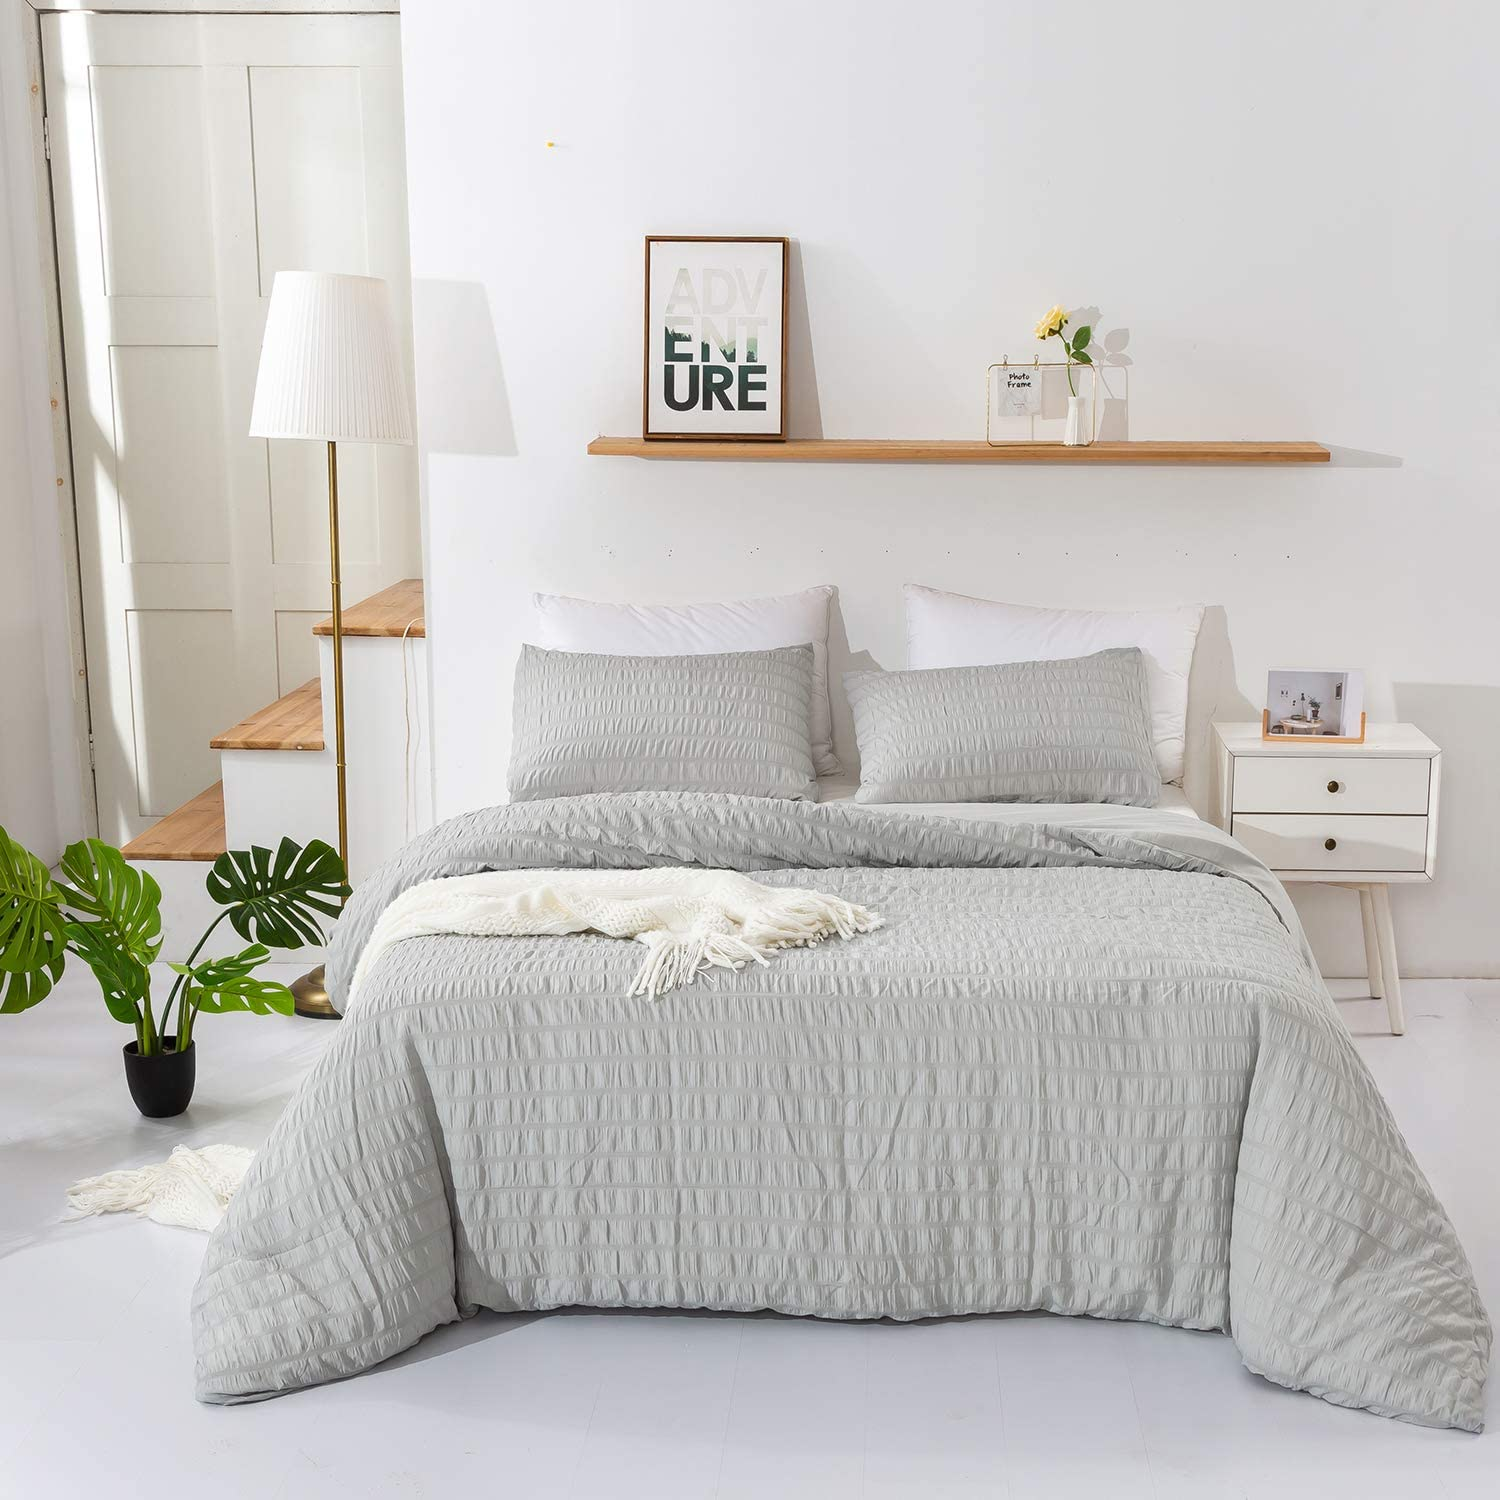 Wellboo Grey Seersucker Duvet Cover Plain Grey Bedding Sets Cover Solid Color Women Girl Adult Bedding Queen Microfiber Durable Duvet Cover Lightweight Breathable Health with 2 Pillowcases No Insert